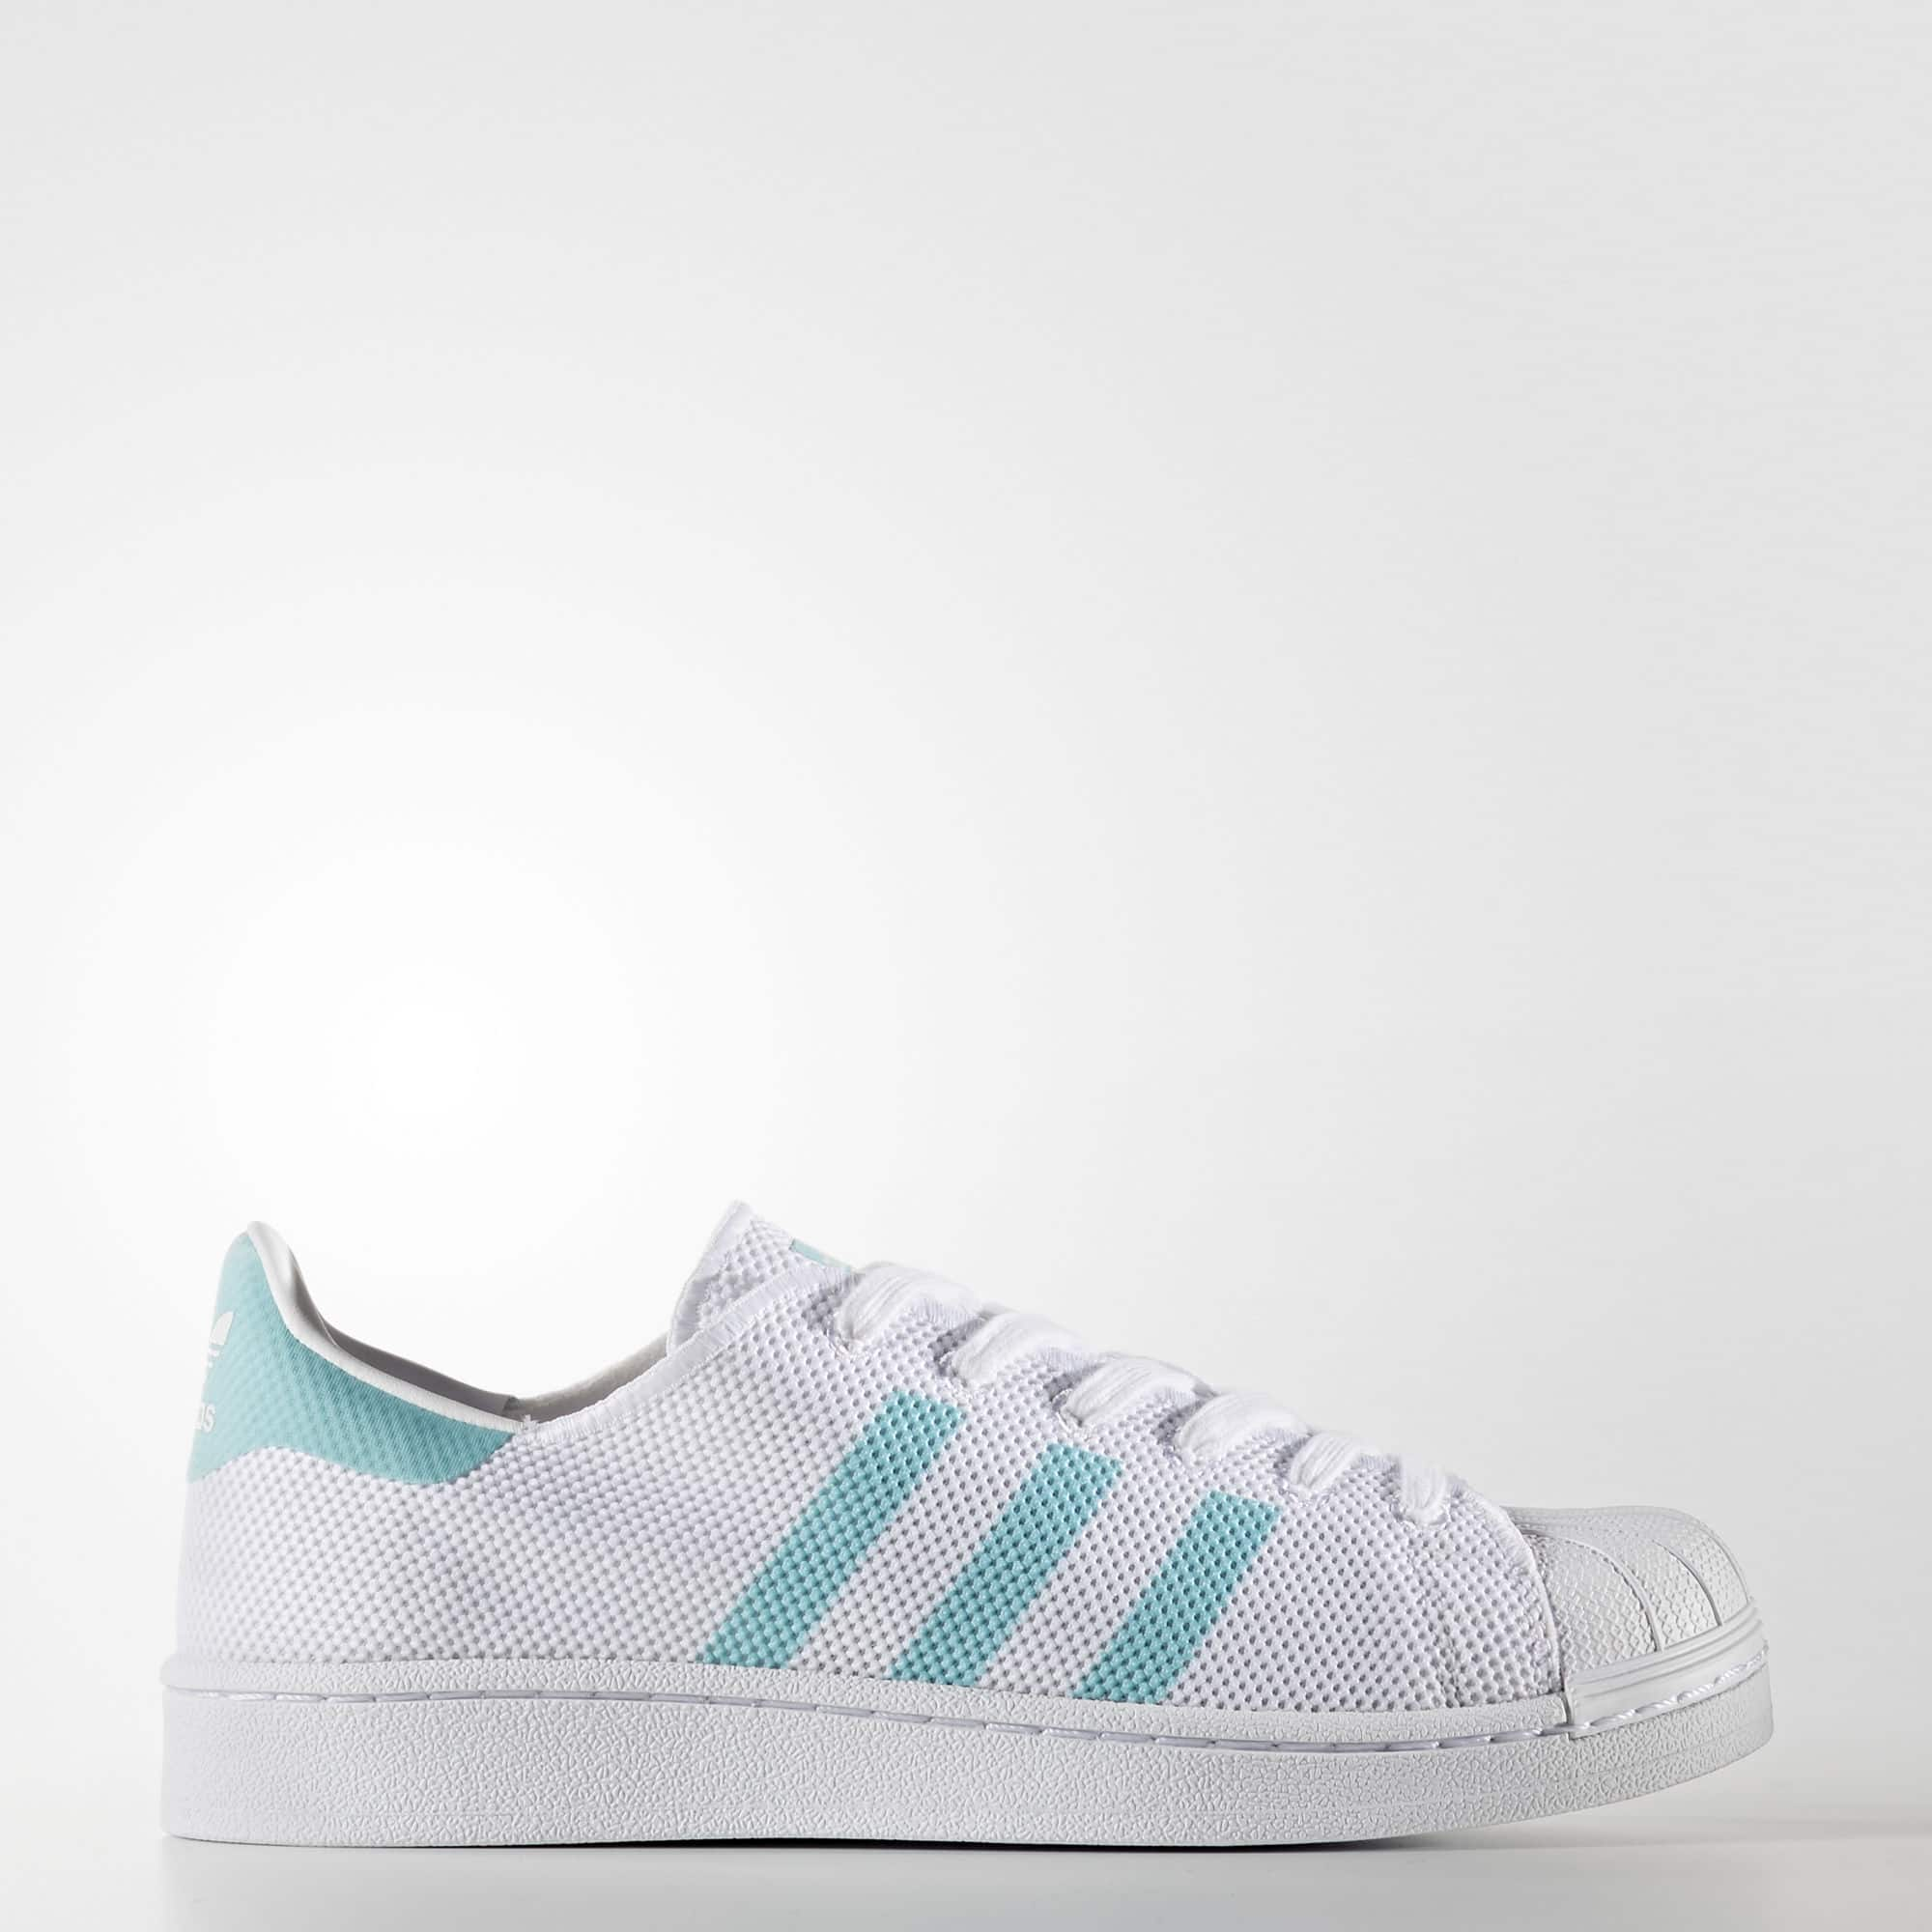 adidas Women's Originals Superstar $30, Men's Stan Smith Perforated Leather (Blue) $34, Women's Capri Tights $12, Men's Superstar adiColor Shoes $35, More + free shipping